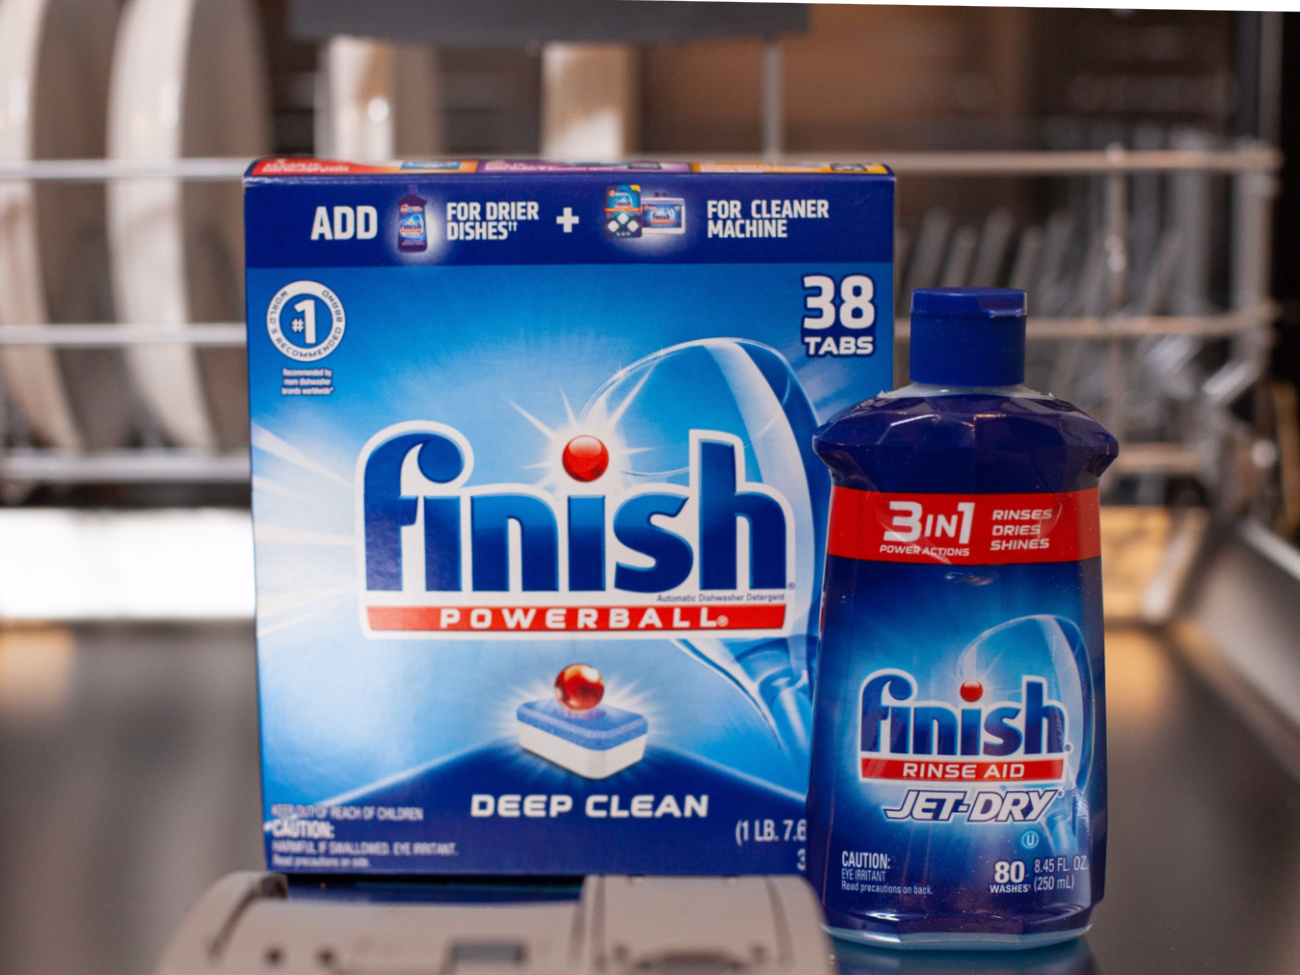 Finish Dishwashing Detergent And Rinse Aid As Low As .79 At Kroger